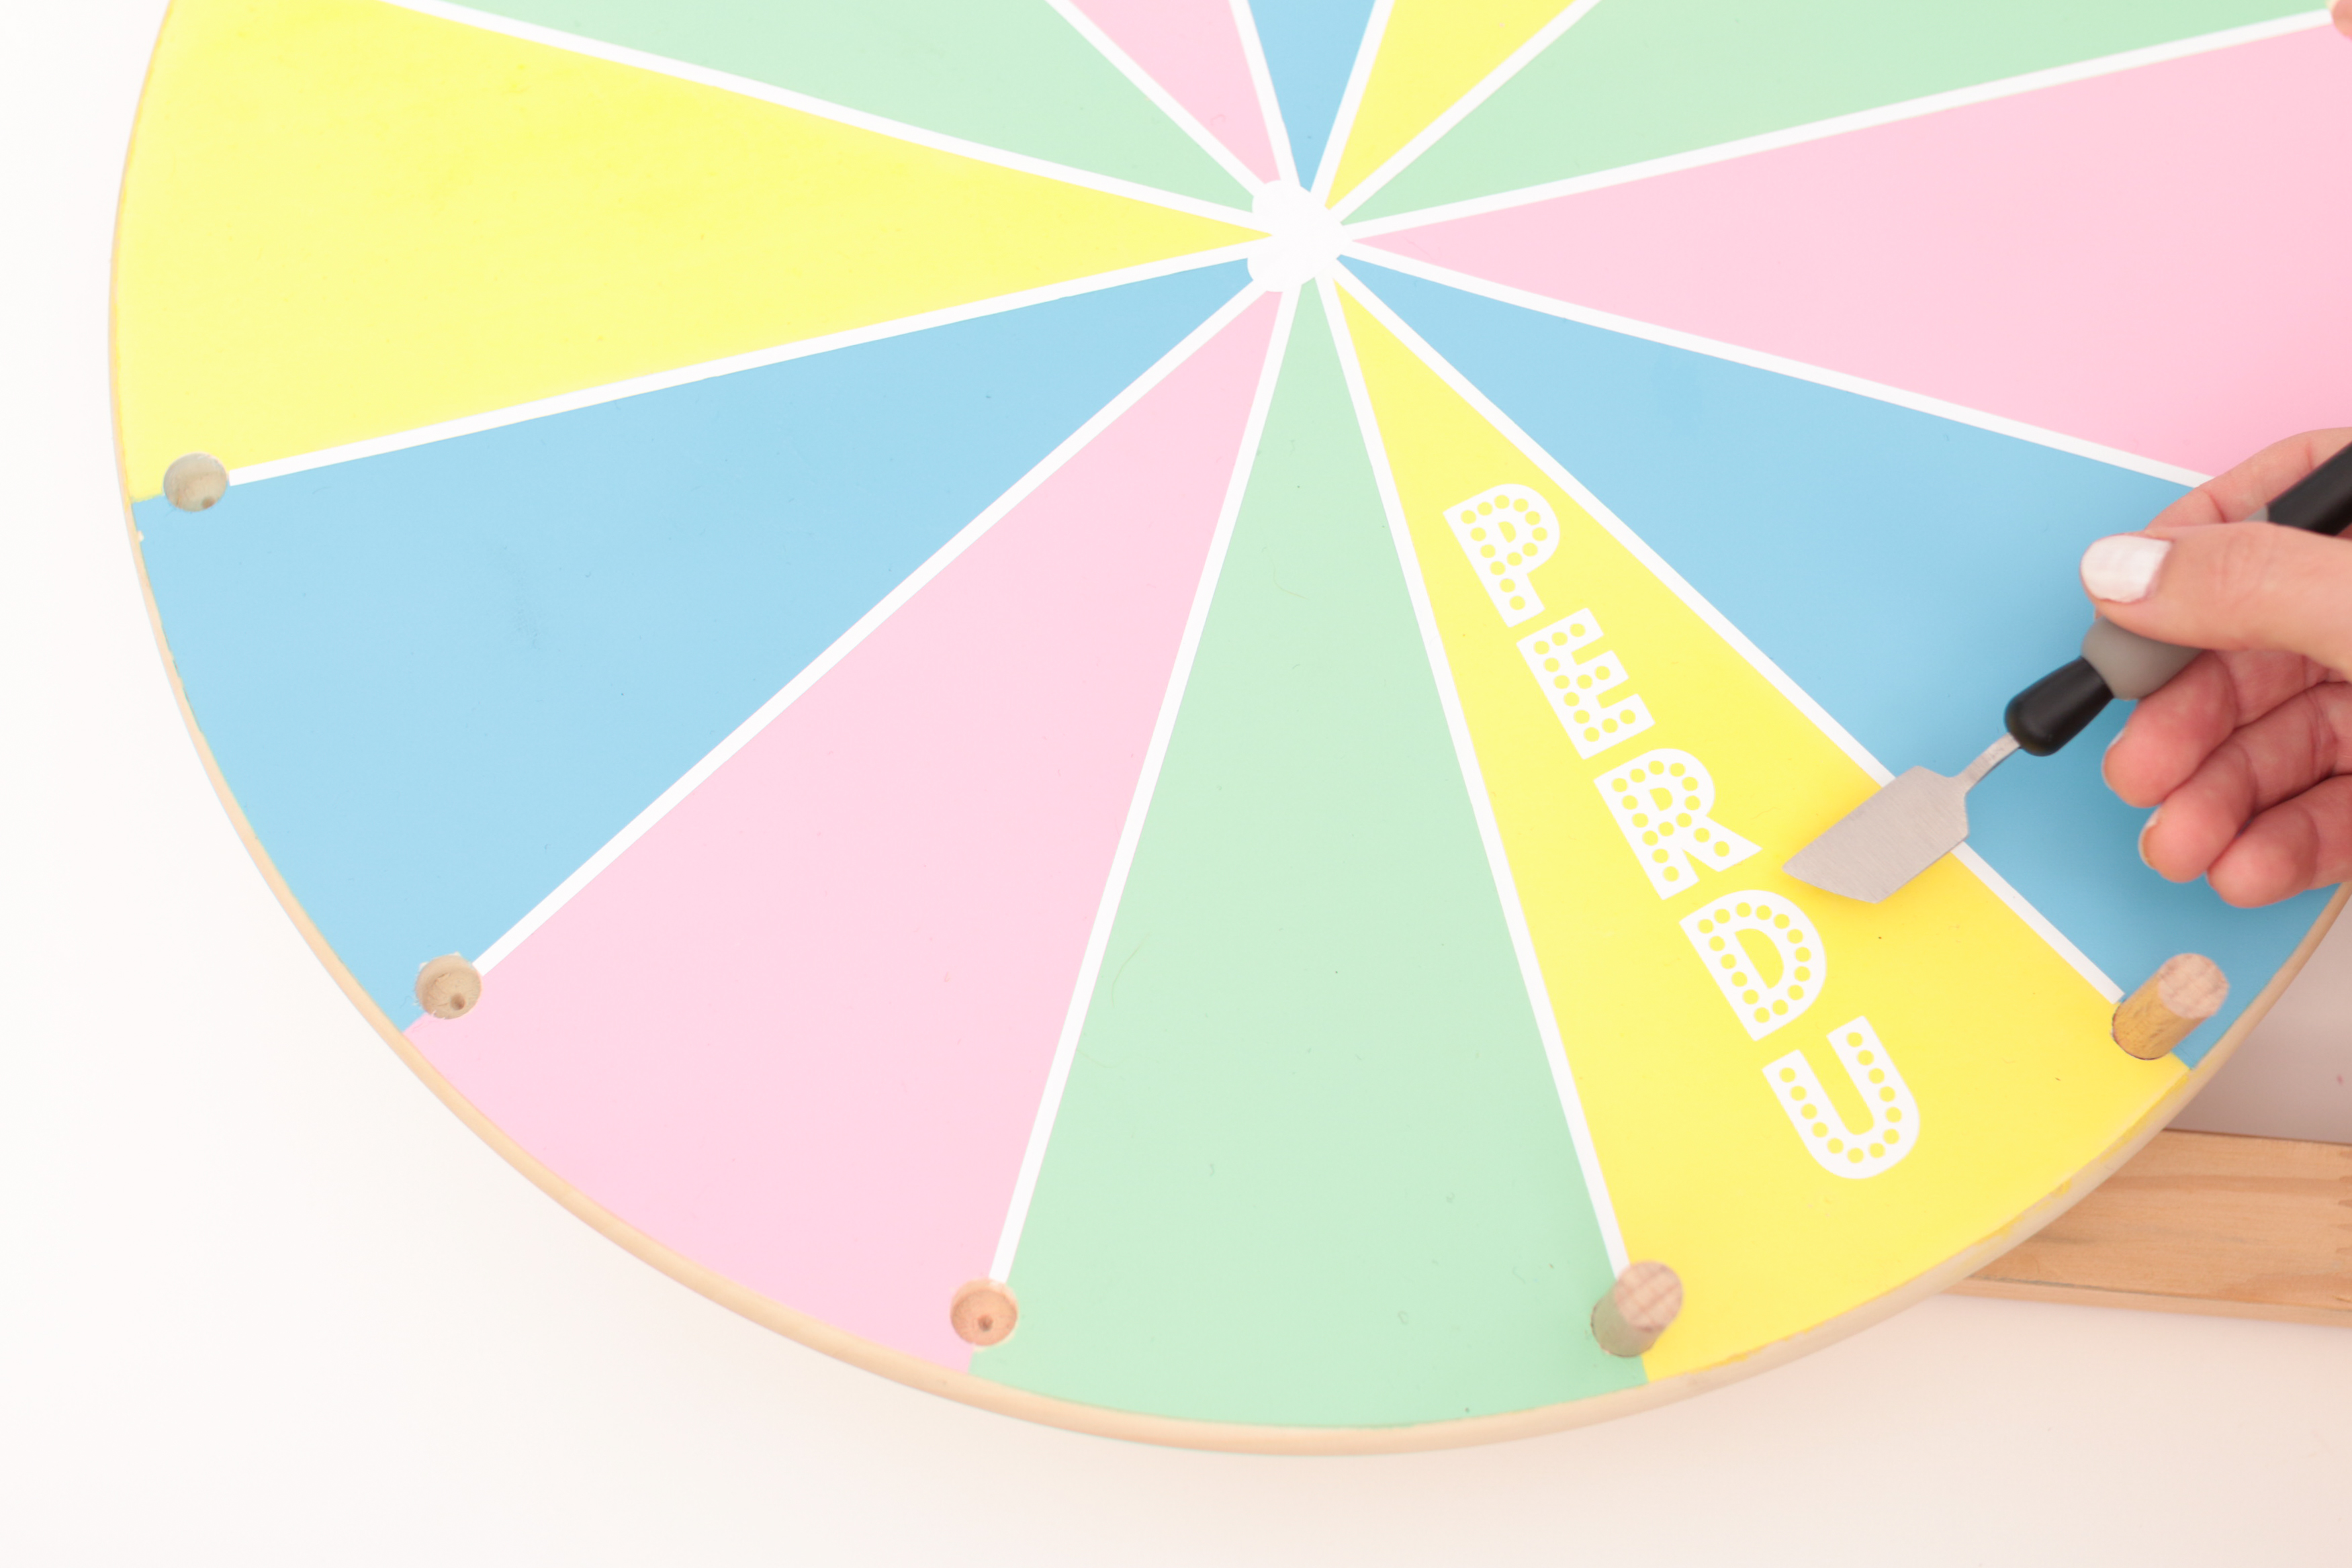 diy-roue-de-la-fortune-wheel-fortune-i-sp4nkblog-20